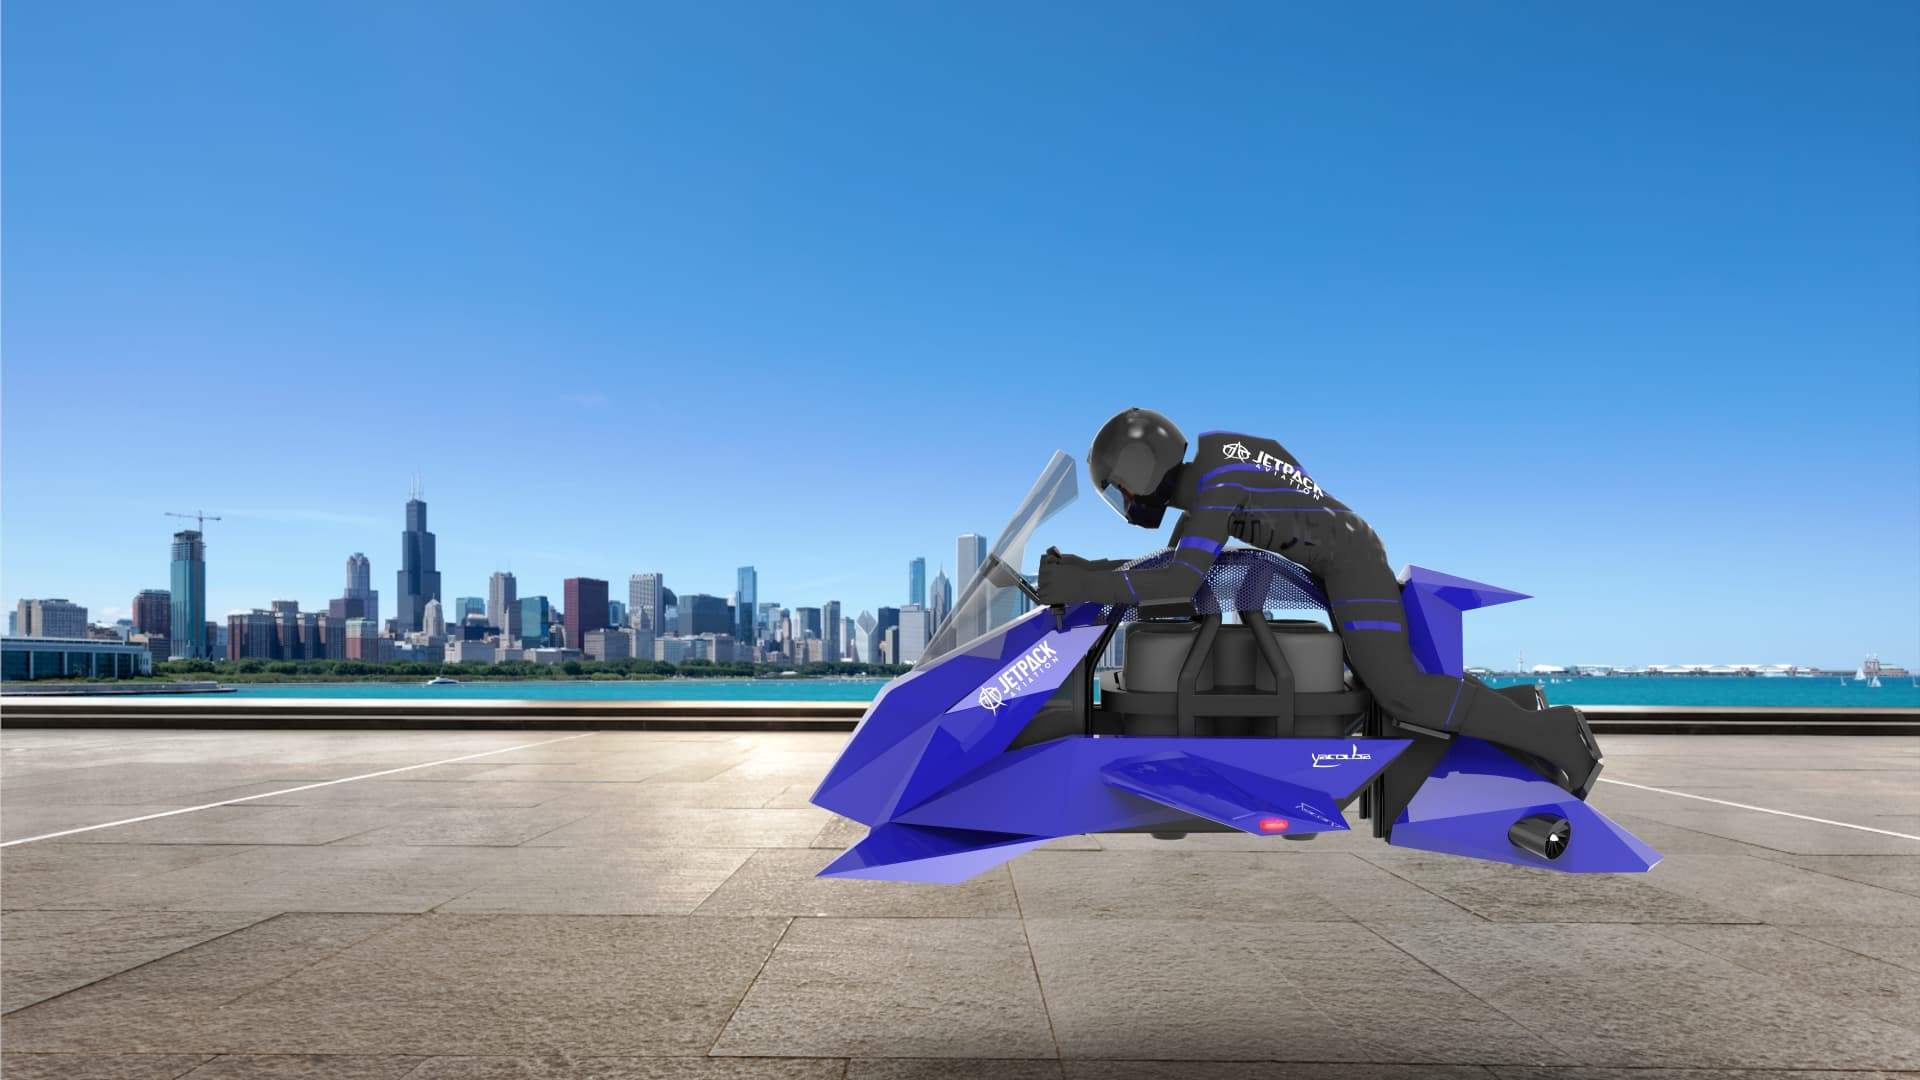 A rendering of JetPack Aviation's Speeder, a flying motorcycle being developed that can be used for commercial and military use.